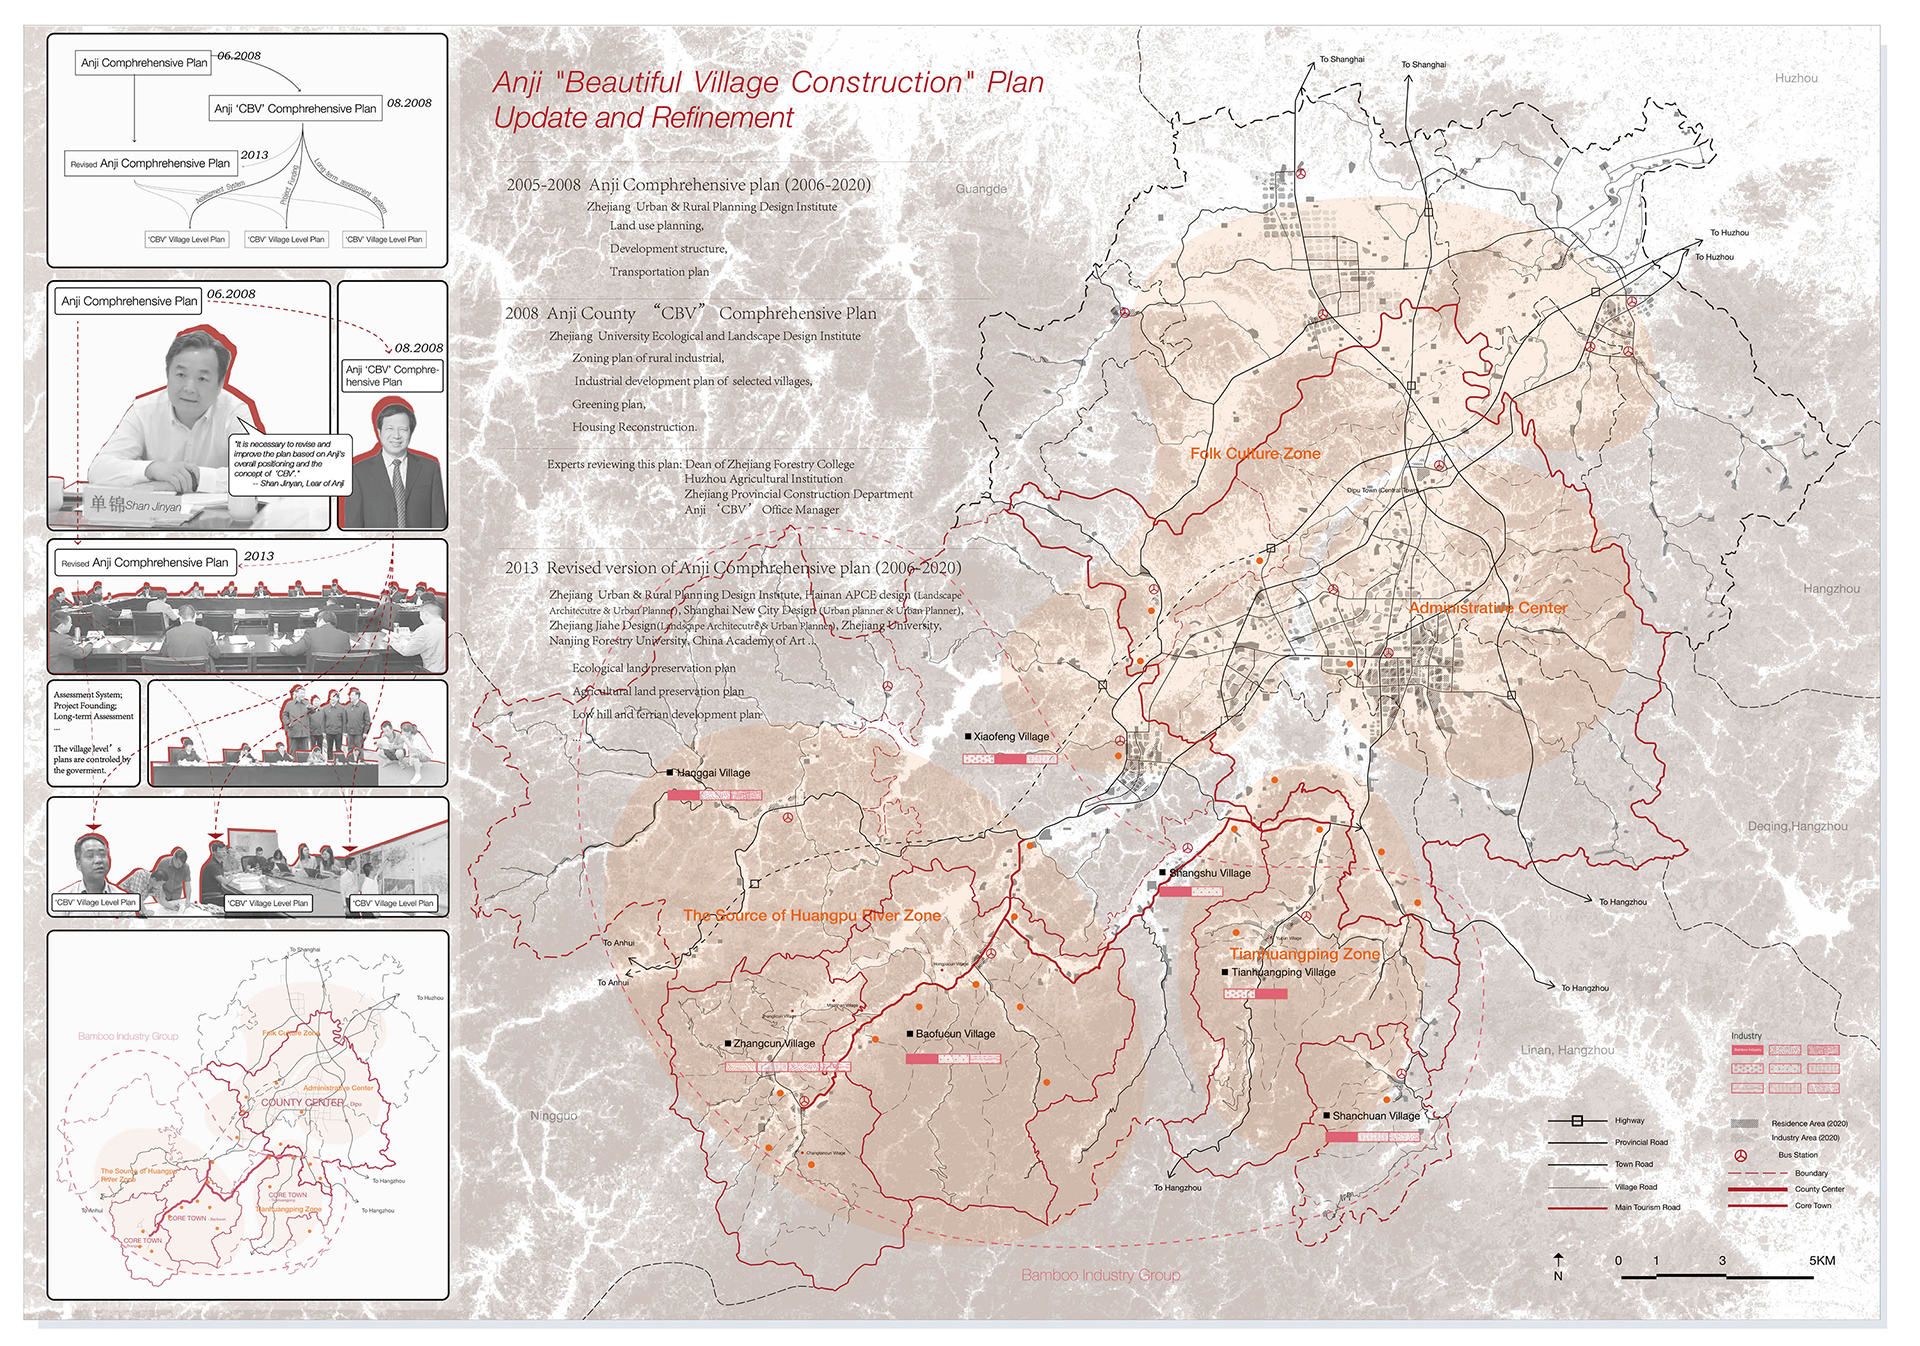 Enlarge Photo: By overlapping three upper-level plannings, it's clear that these plannings represent the dominant worldview that emphasizes the economically sustainable. Therefore, it is hard for rural development to achieve environmentally sustainable. By WANG Xuting Julie.